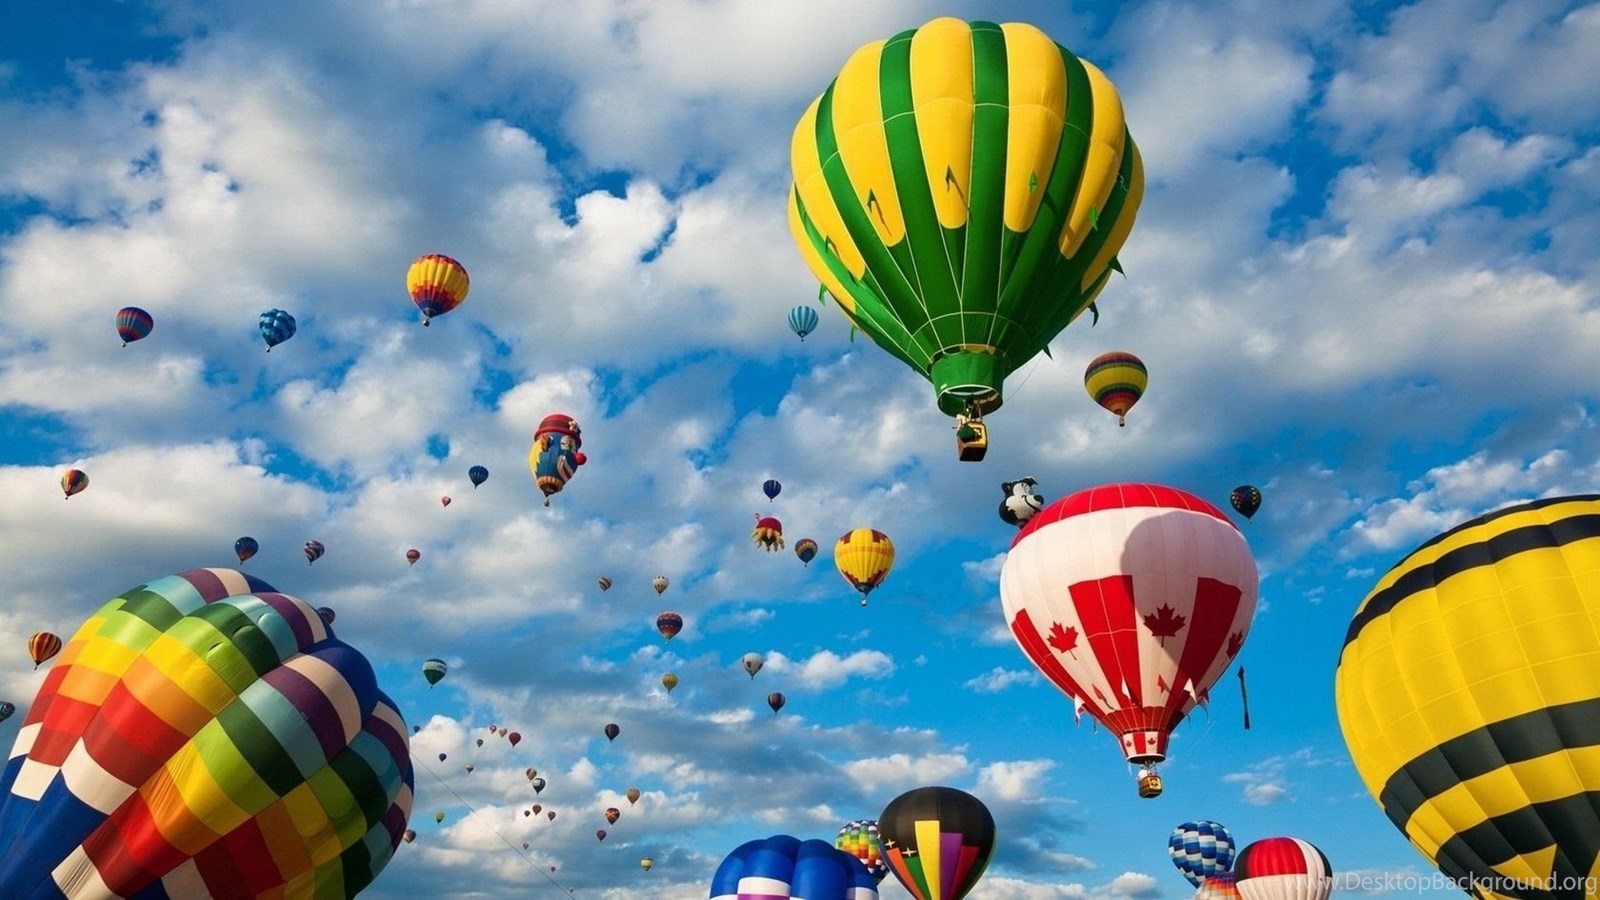 Balloons Wallpapers - Top Free Balloons Backgrounds ...